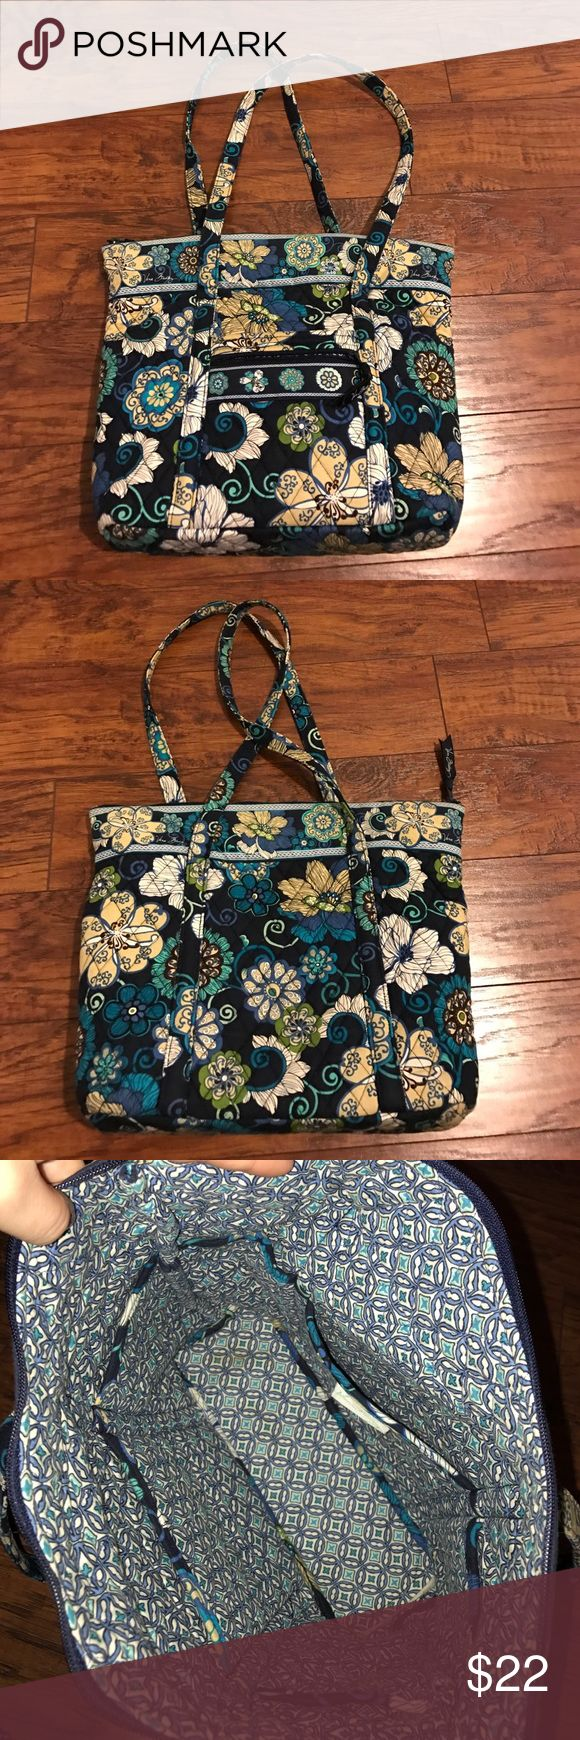 Vera Bradley medium tote Vera Bradley medium tote, great condition, no tears or pulls on the fabric, zipper works perfectly Vera Bradley Bags Totes